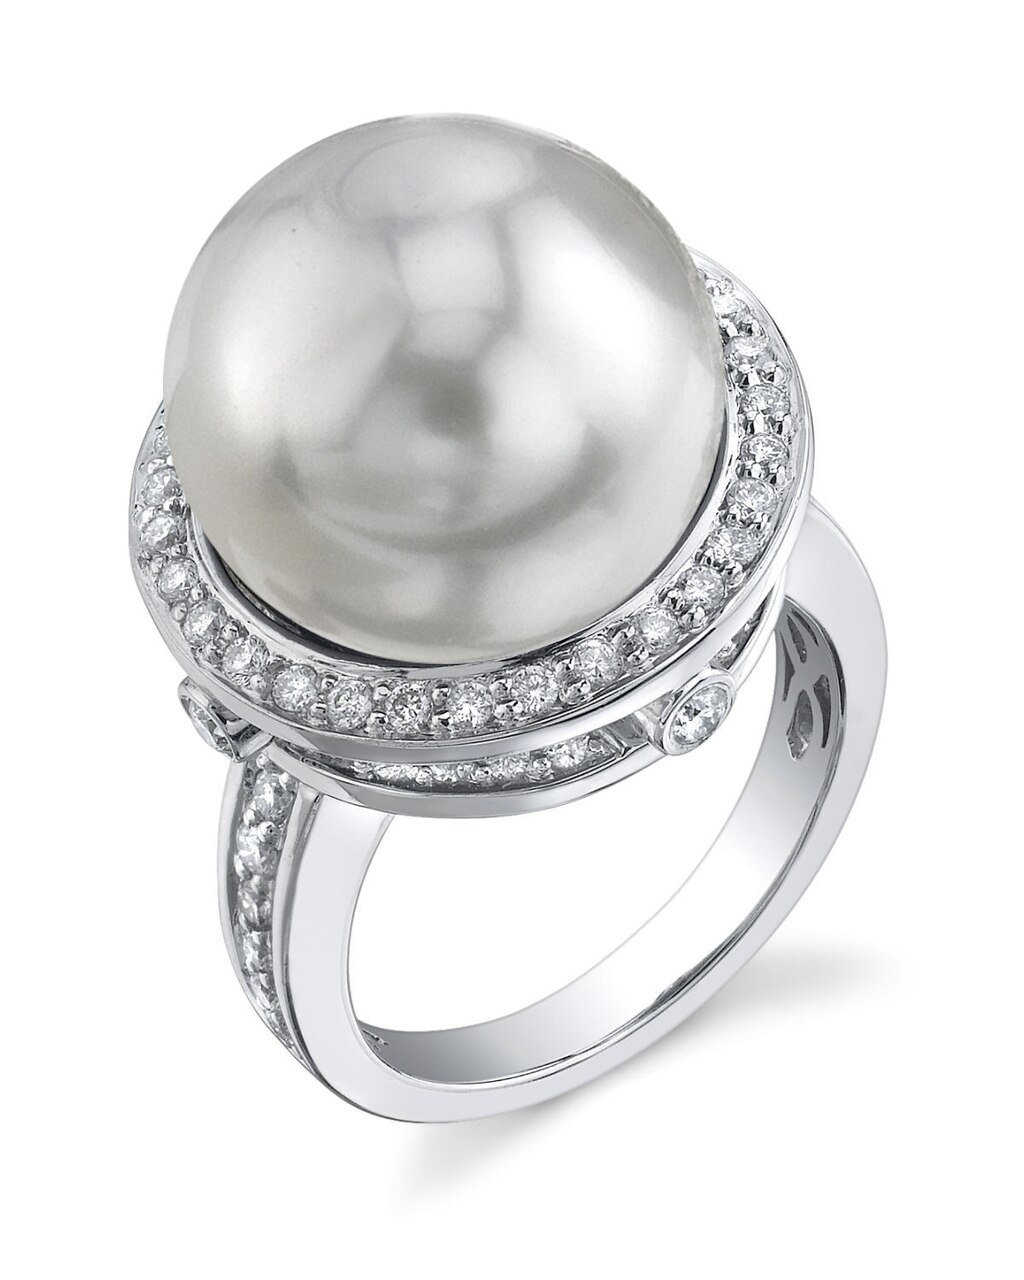 This exquisite ring features an 14.0-15.0mm White South Sea pearl, handpicked for its luminous luster